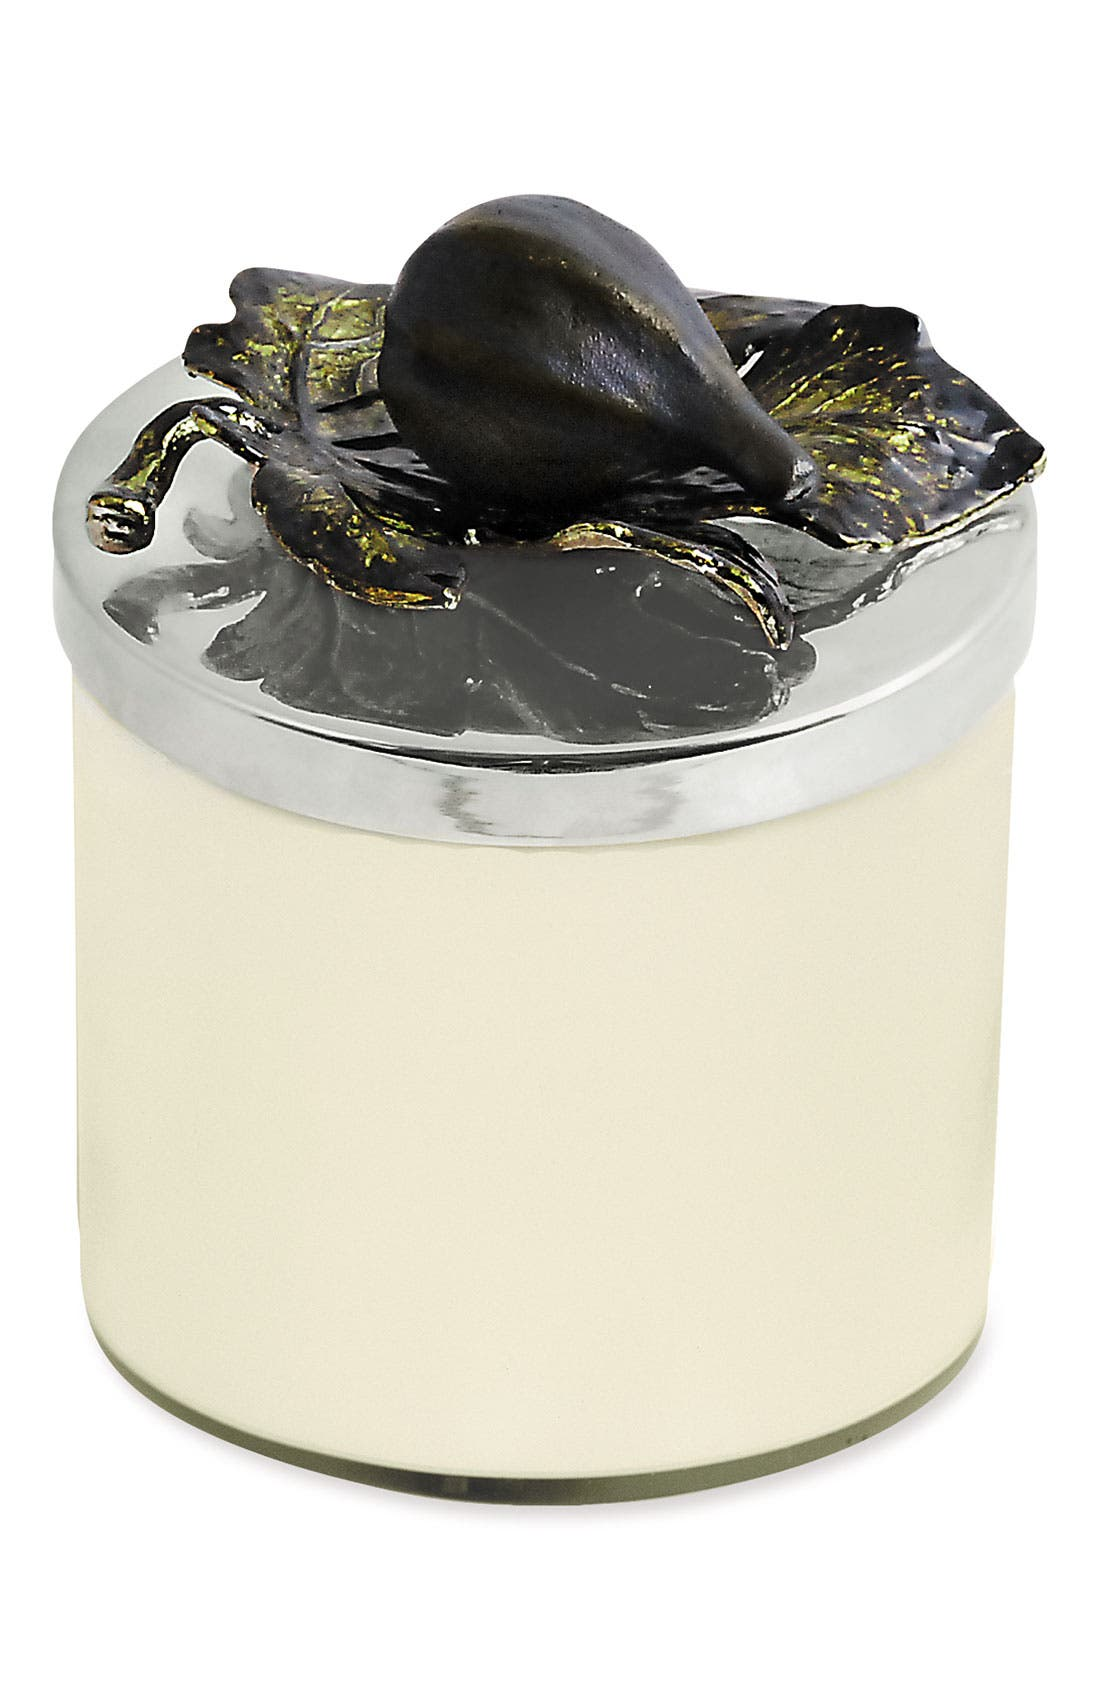 Main Image - Michael Aram 'Fig Leaf' Soy Wax Candle